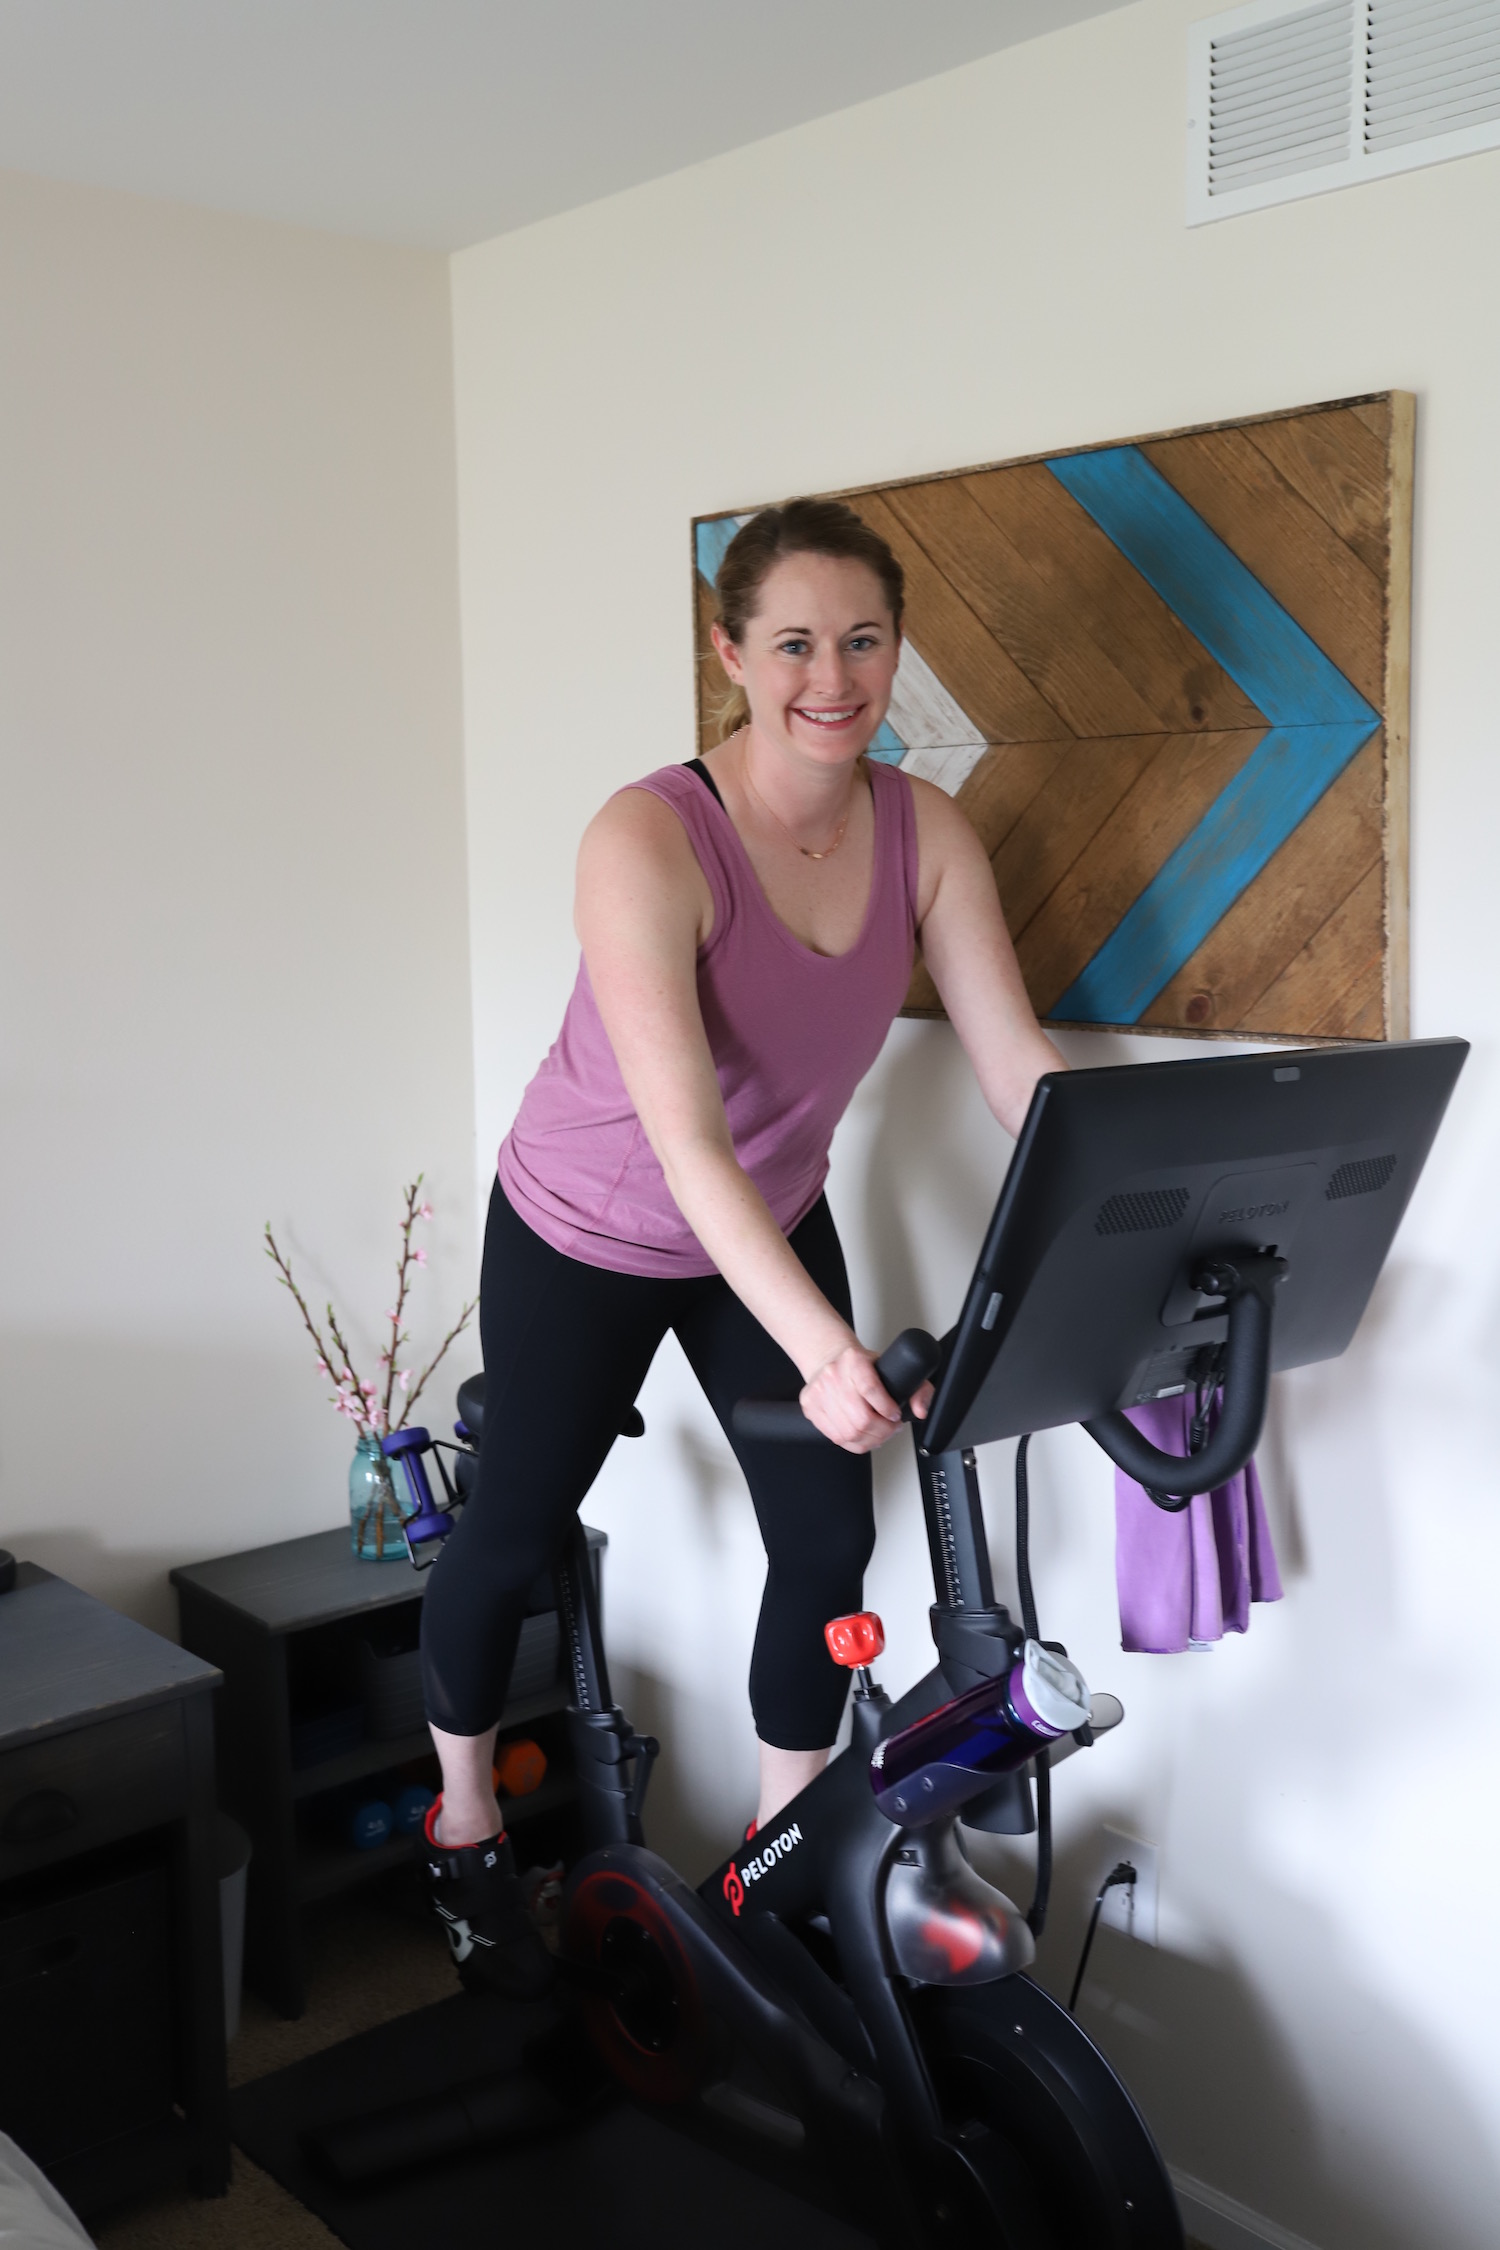 Peloton Bike Review - Is a Peloton worth it? What if I've never taken a spin class before? Read my completely unbiased opinion after having my Peloton Bike for over a year!